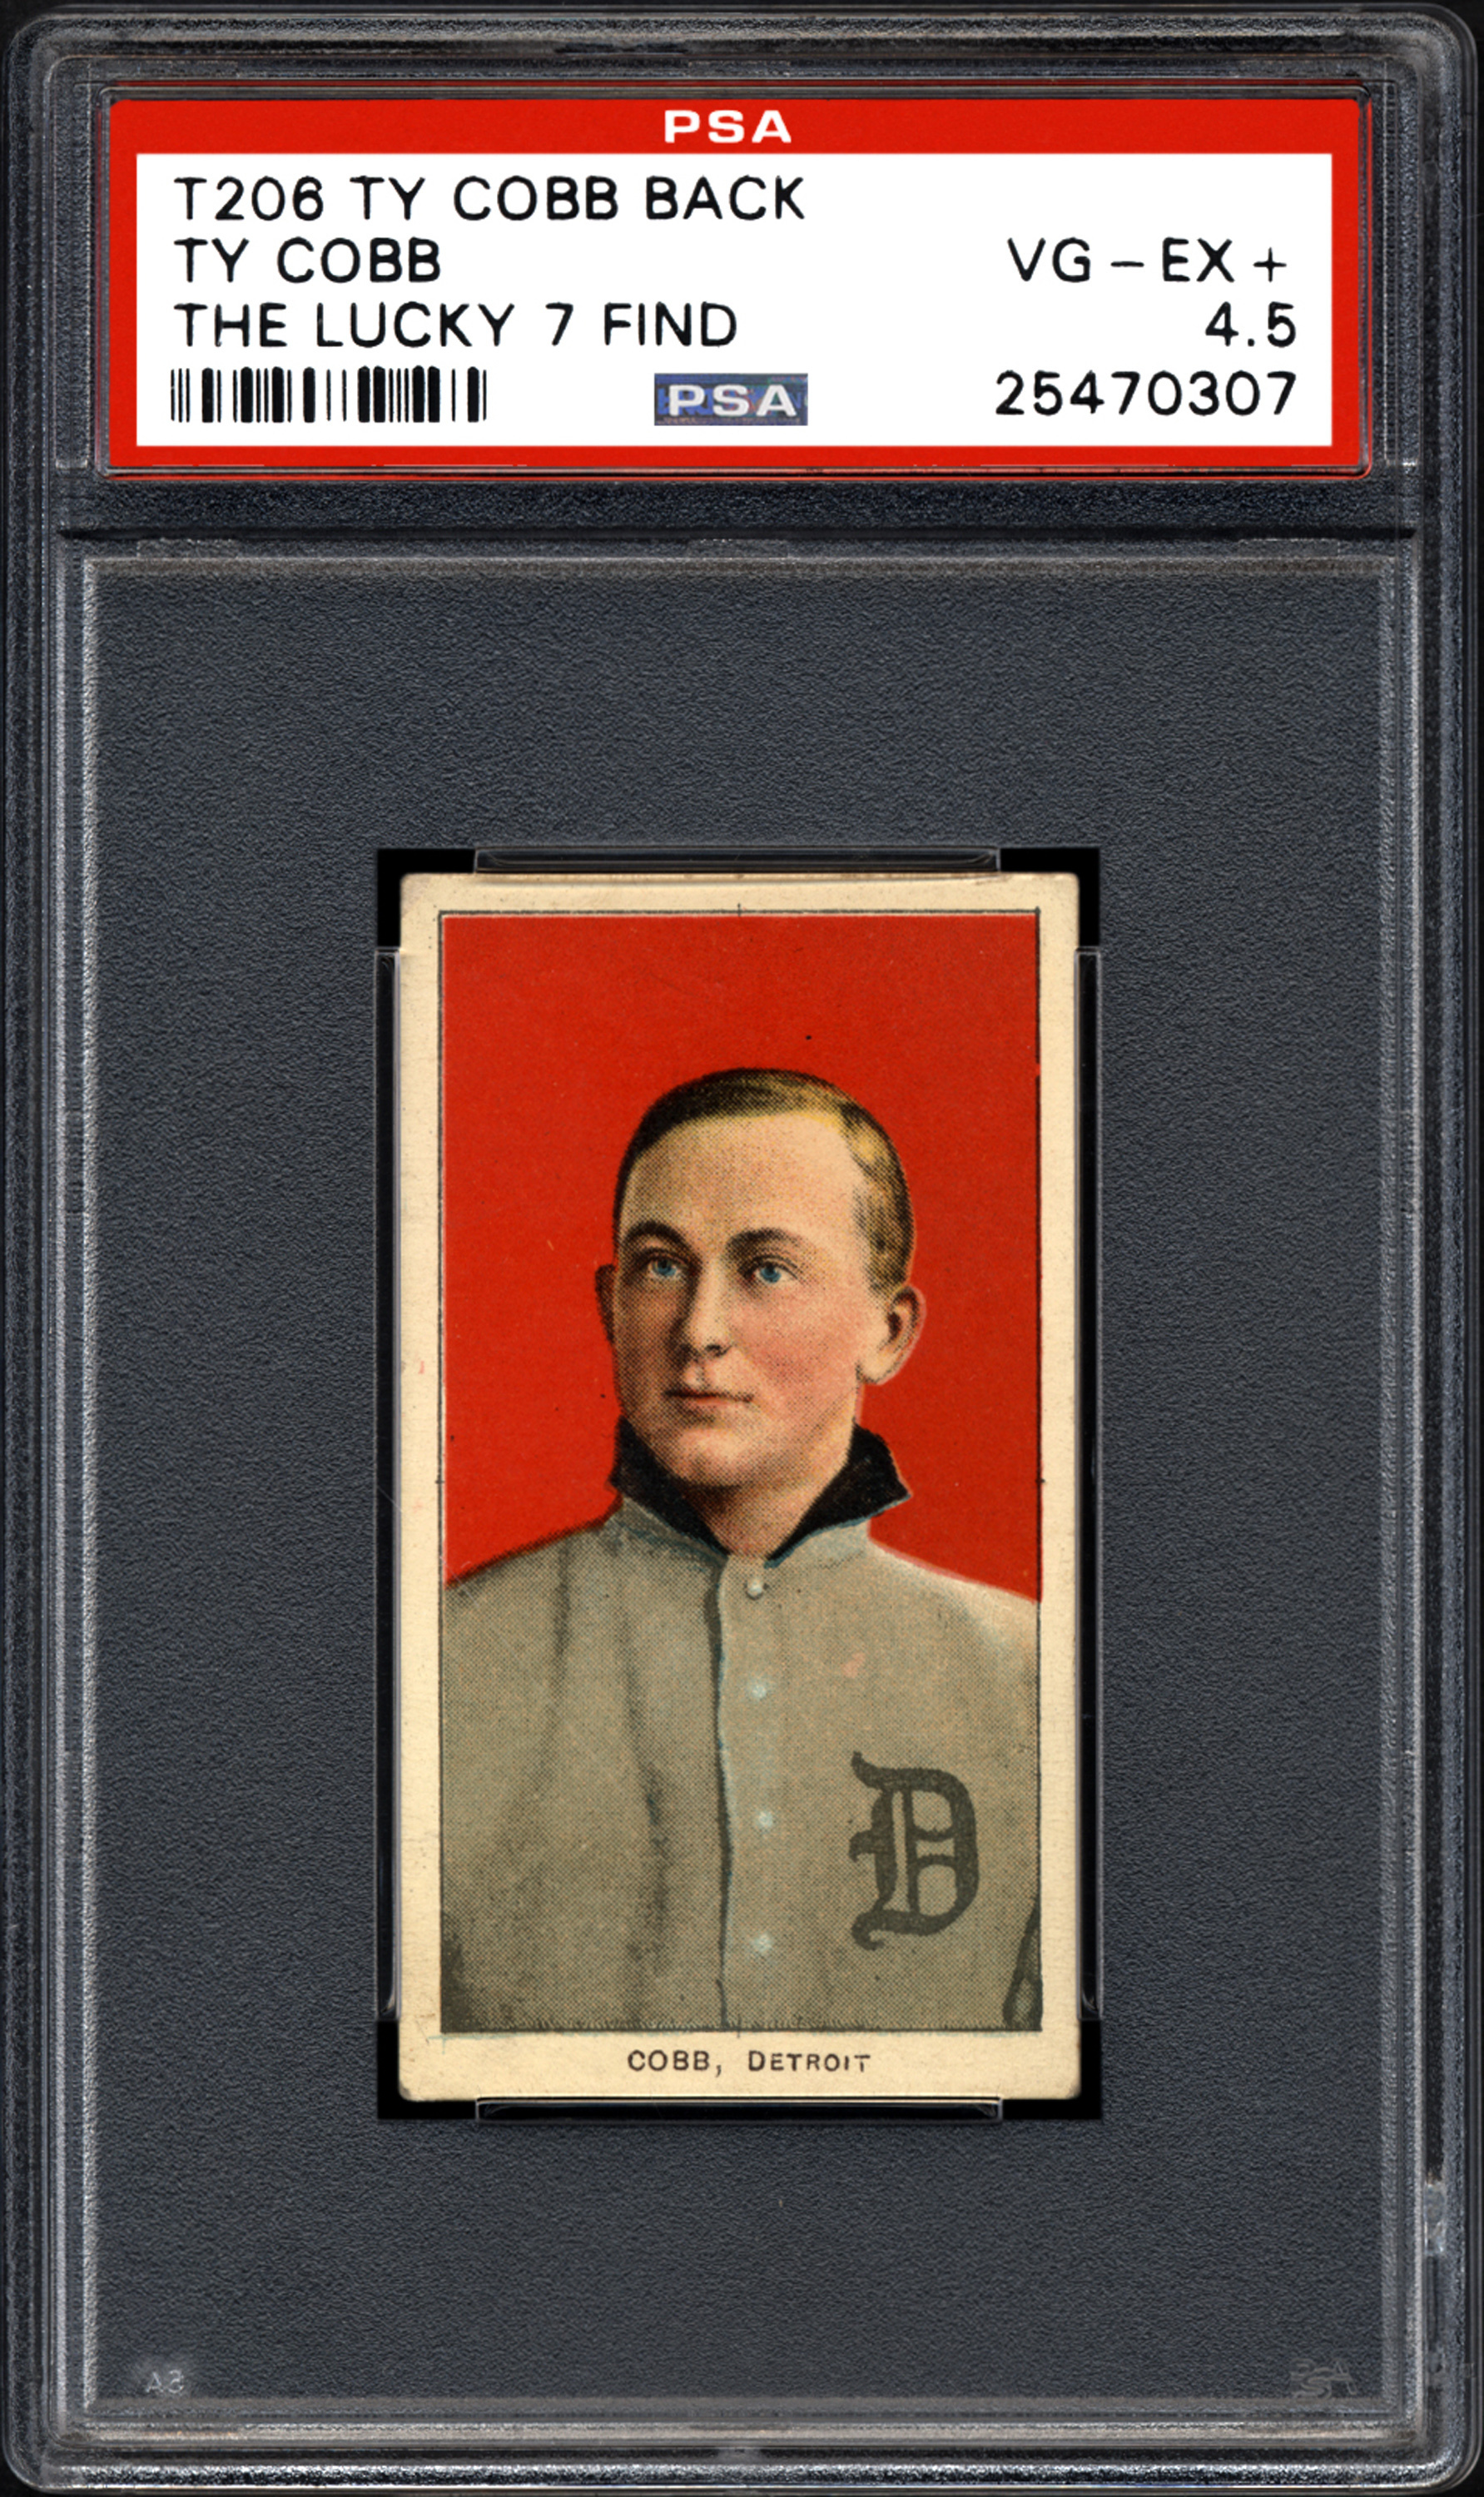 This undated photo provided by Professional Sports Authenticator shows one of seven Ty Cobb baseball cards, that were found crumpled inside a paper bag in a dilapidated house. Card experts in Southern California say they have verified the legitimacy, and seven-figure value, of the seven identical Ty Cobb cards from the printing period of 1909 to 1911. Before the recent find there were only about 15 known to still exist.